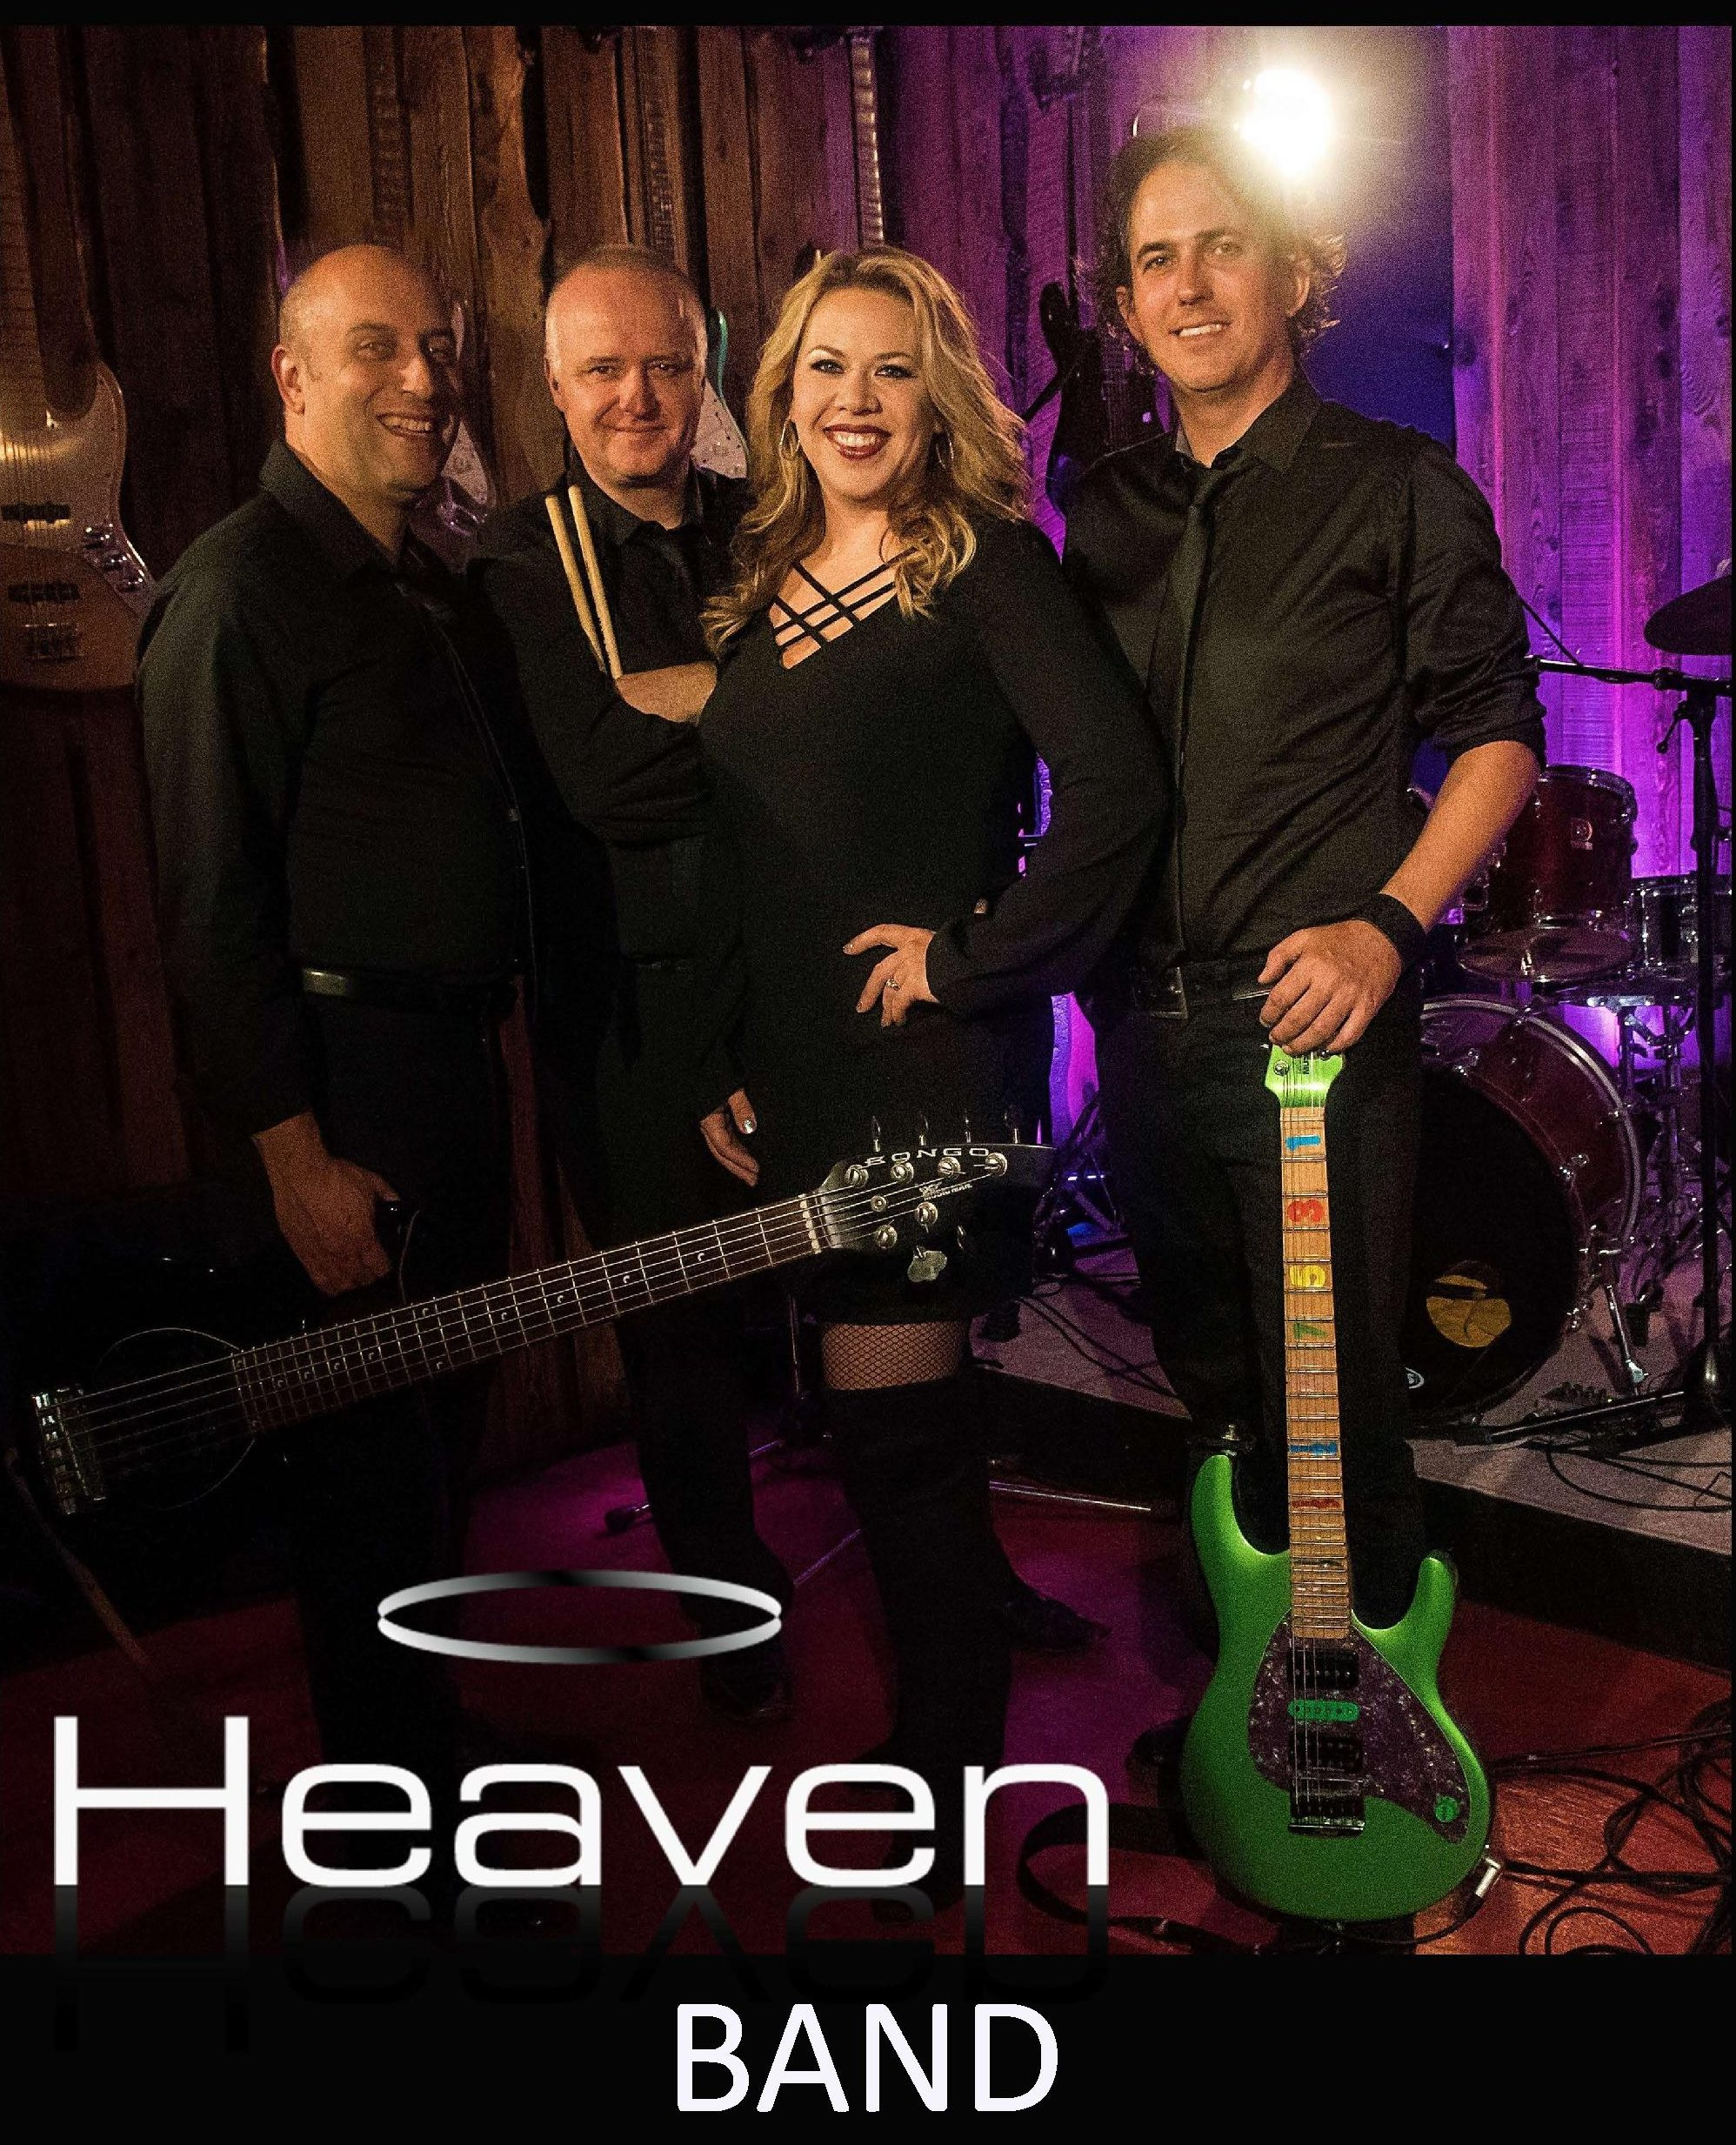 Heaven Band - Groupe Top 40 pour evenements corporatifs-page-001